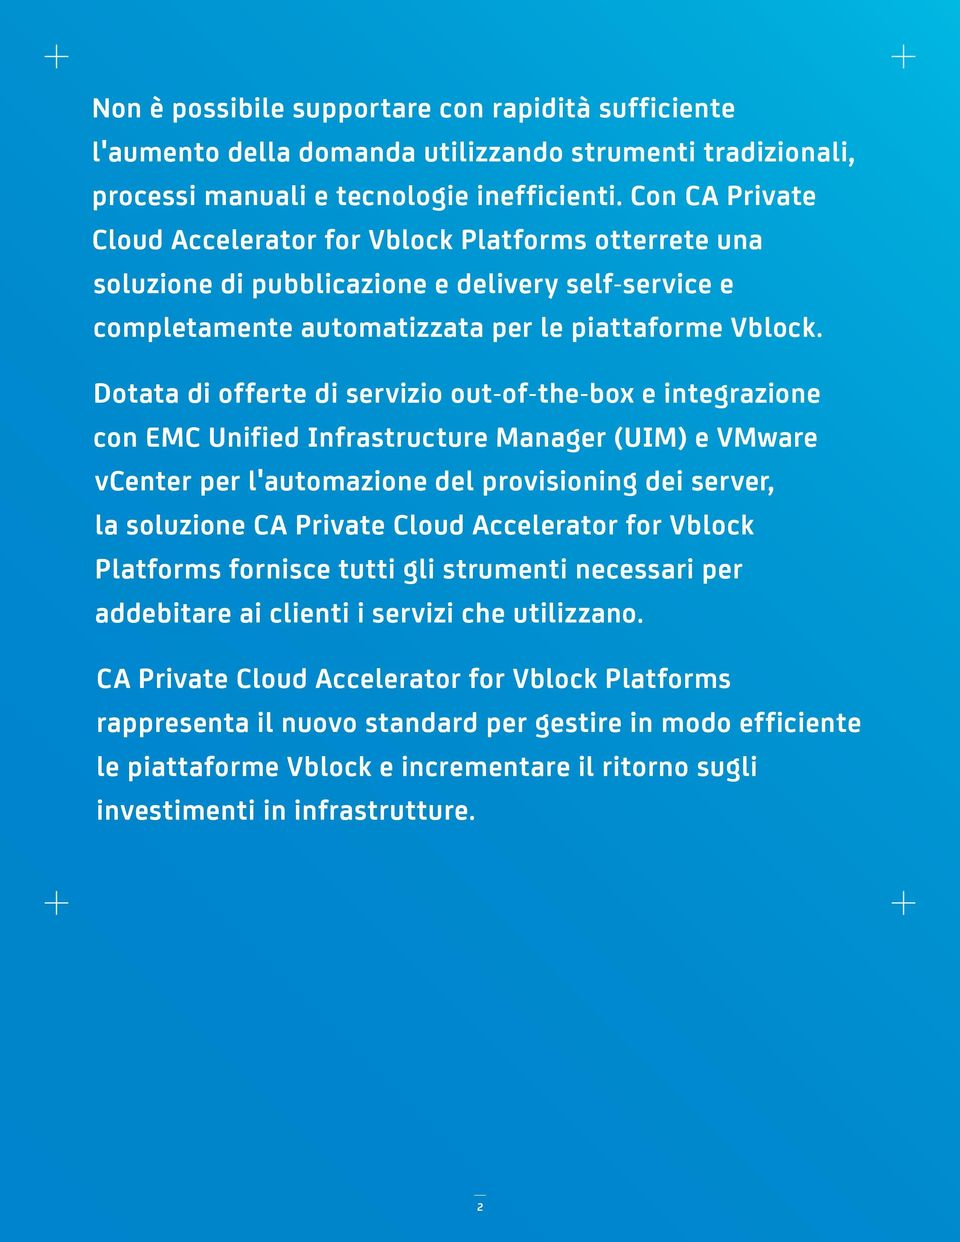 Dotata di offerte di servizio out-of-the-box e integrazione con EMC Unified Infrastructure Manager (UIM) e VMware vcenter per l'automazione del provisioning dei server, la soluzione CA Private Cloud